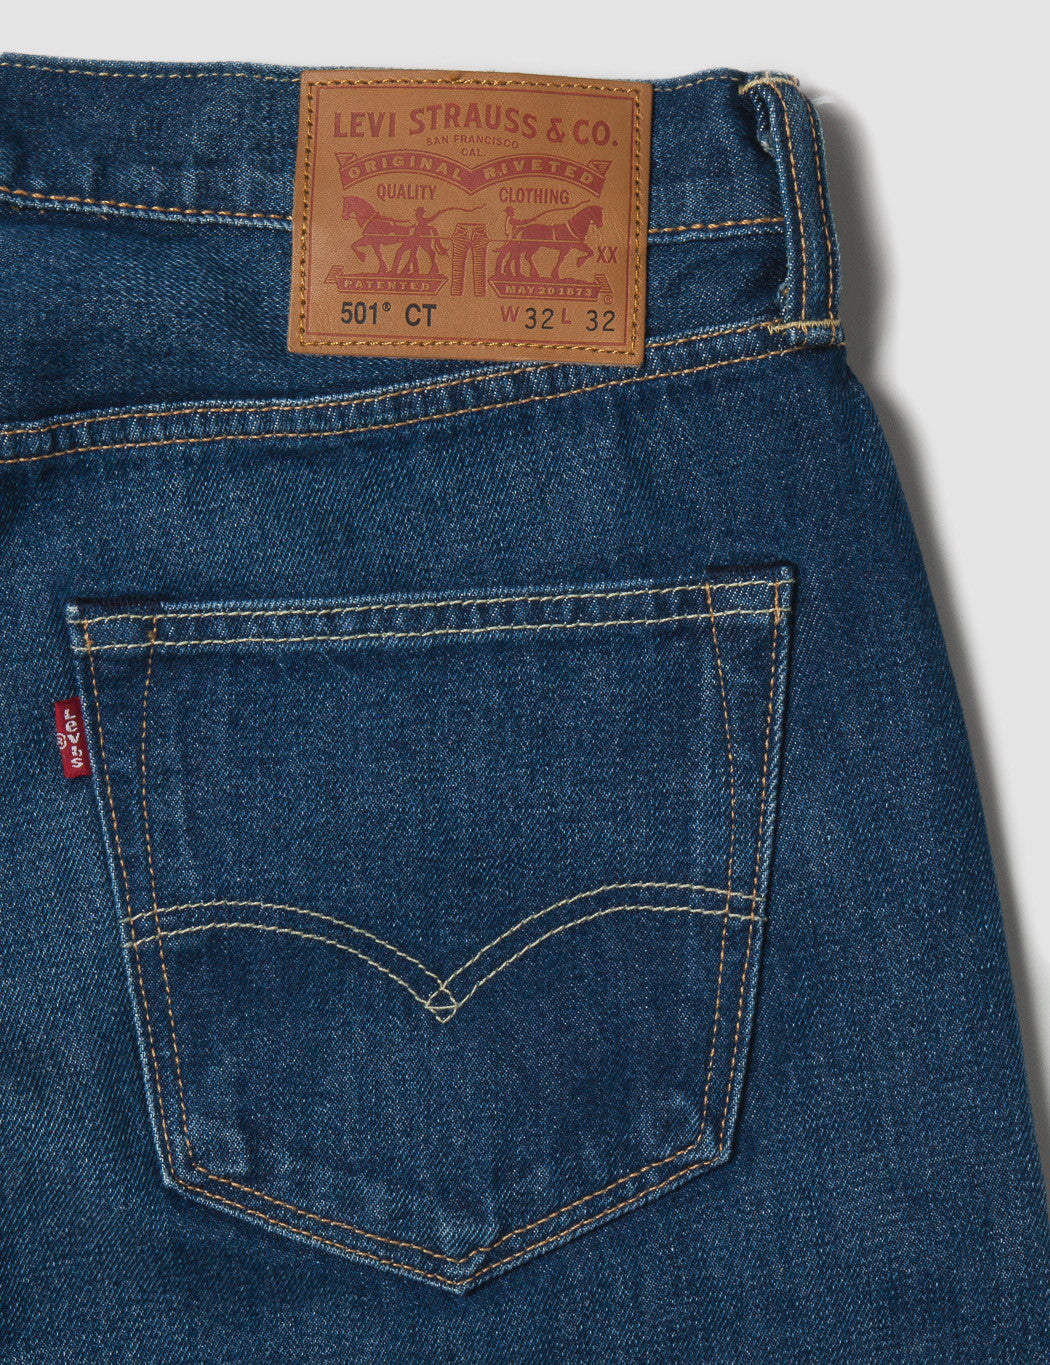 Levis 501 CT Customised Tapered Fit Jeans - Dalston